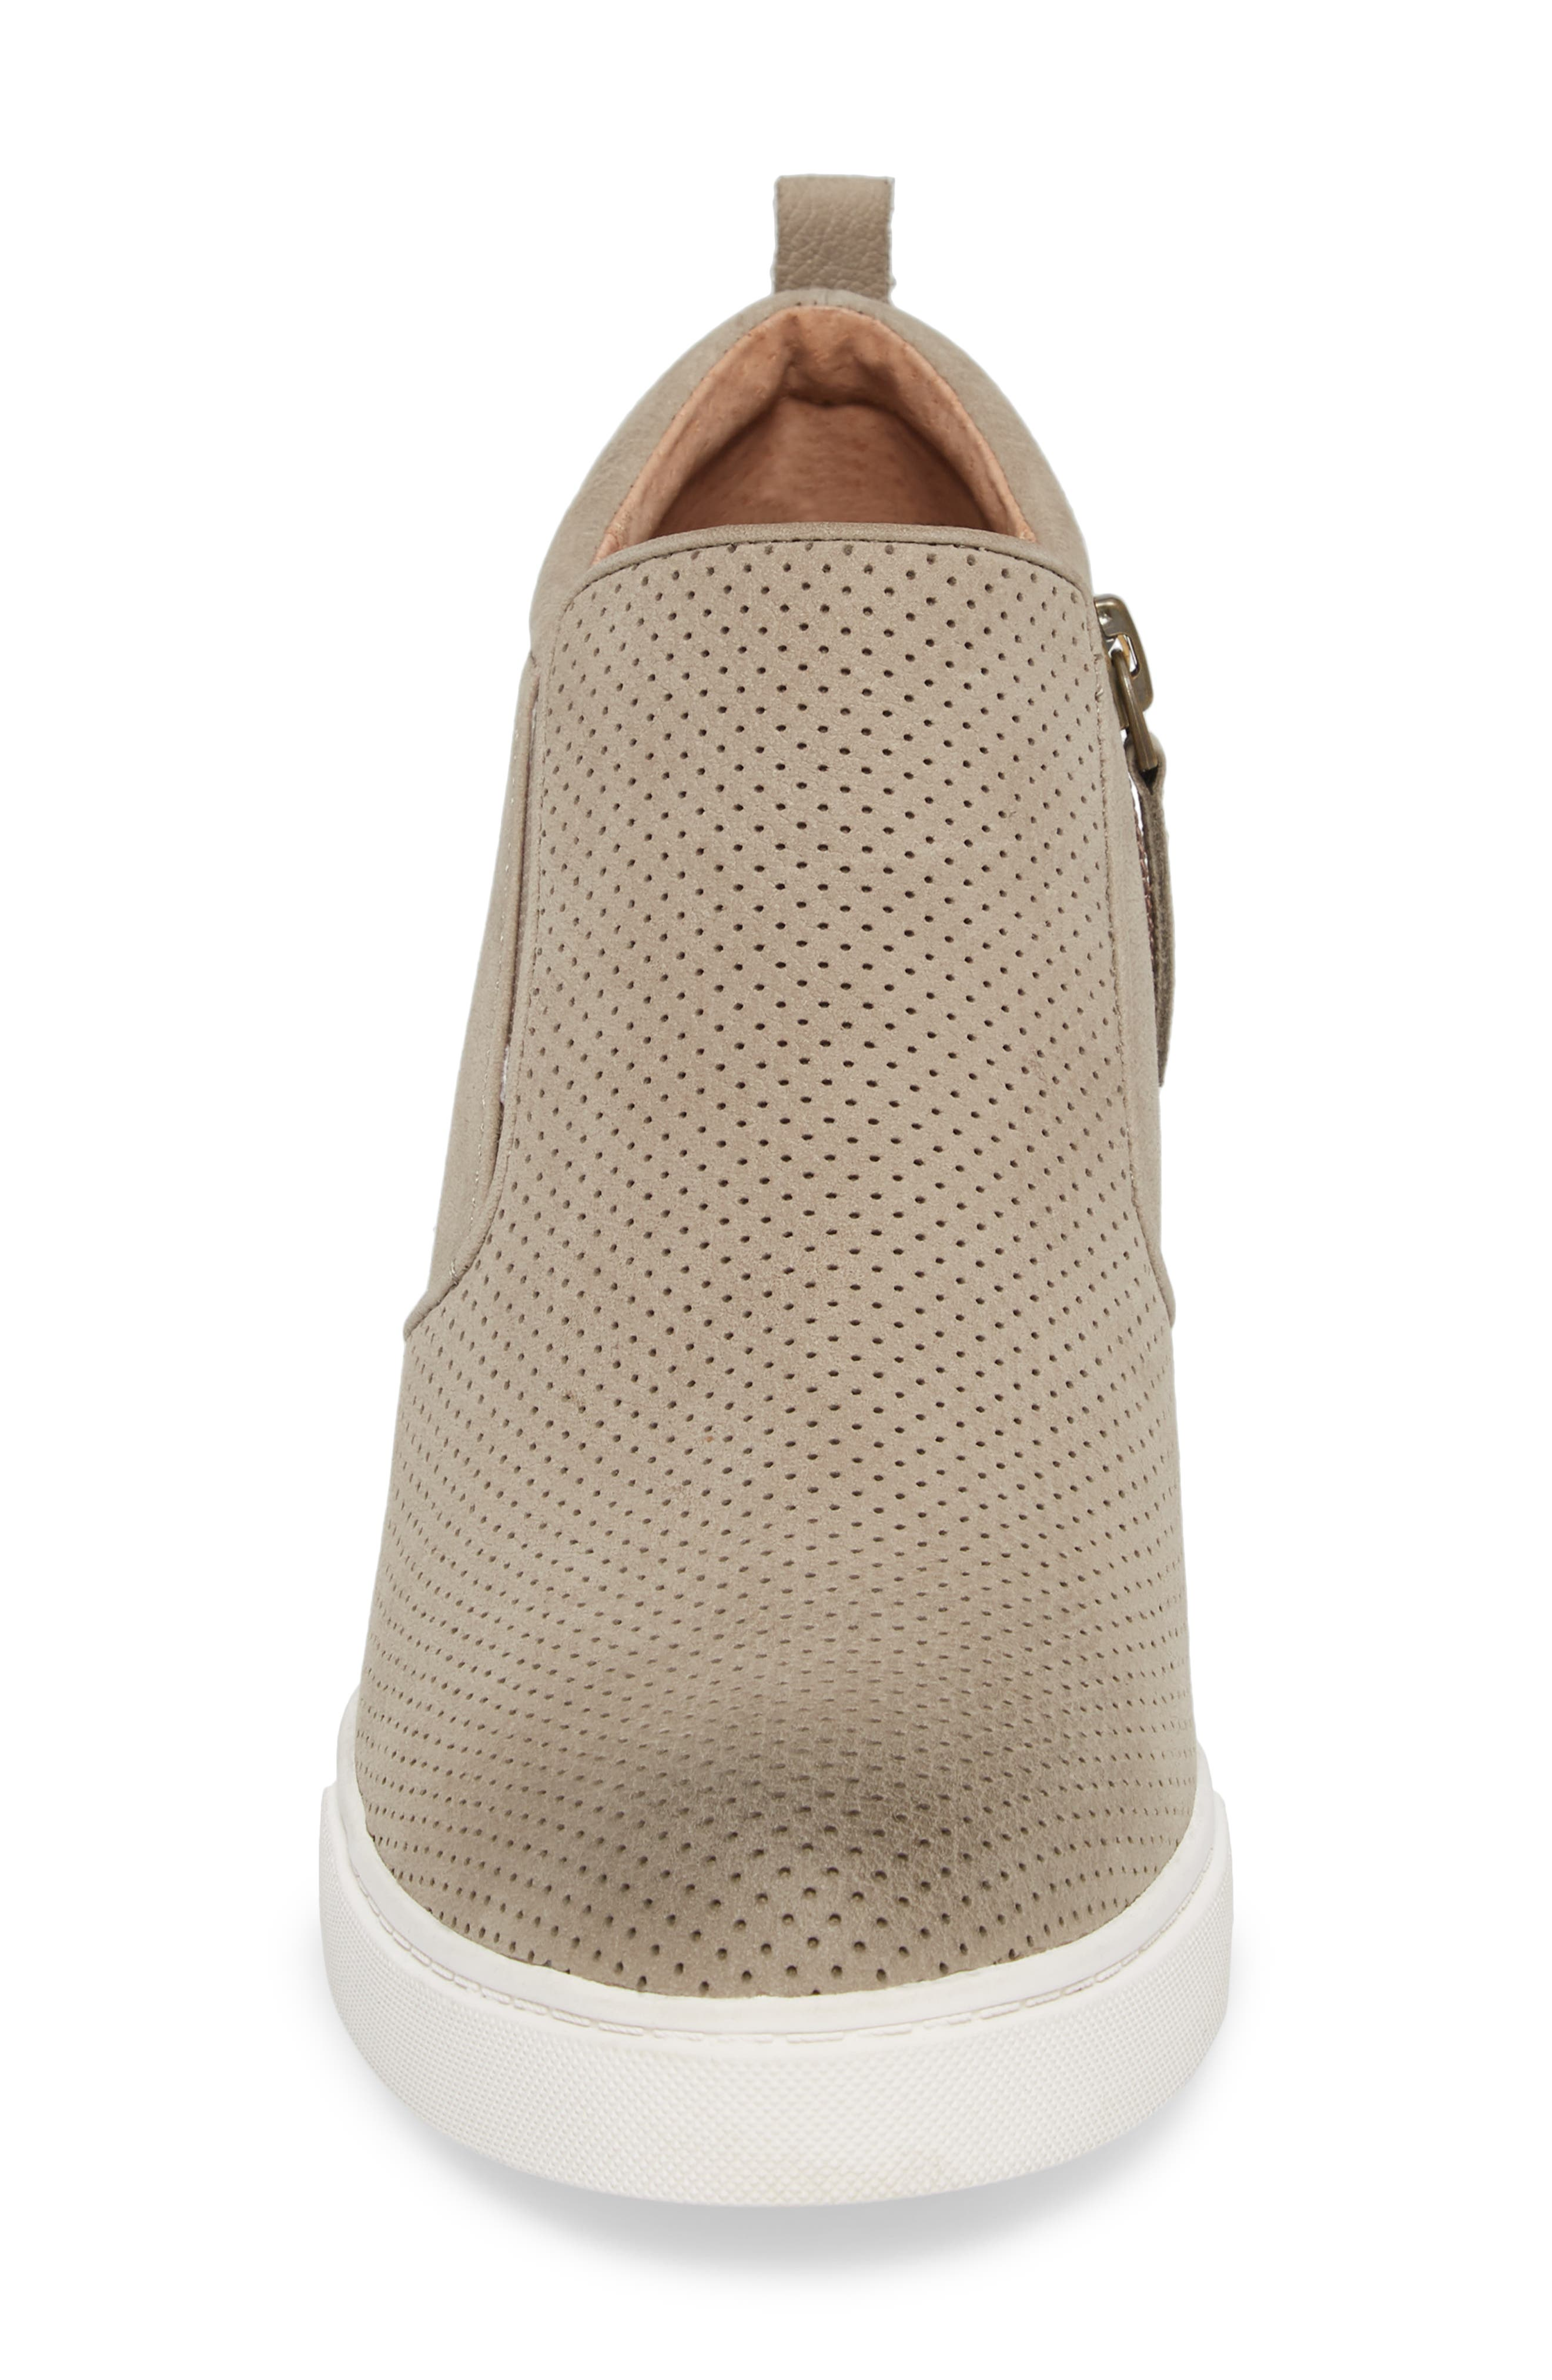 Aiden Wedge Sneaker,                             Alternate thumbnail 4, color,                             Taupe Perforated Leather